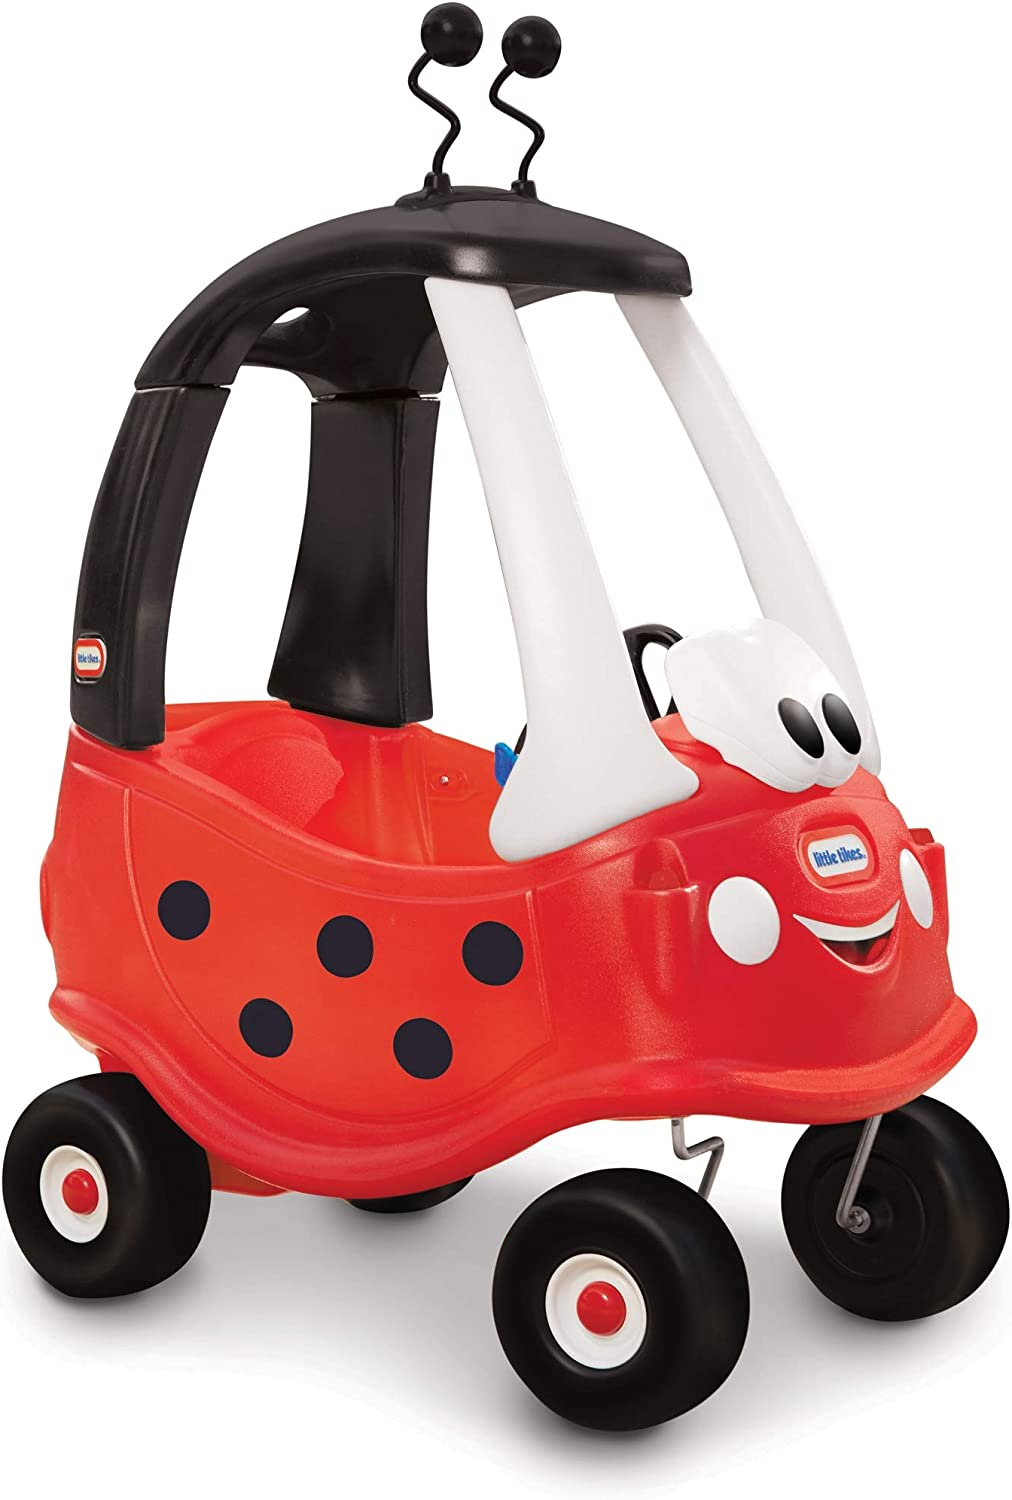 Little Tikes Ladybug Cozy Coupe Ride-On Car